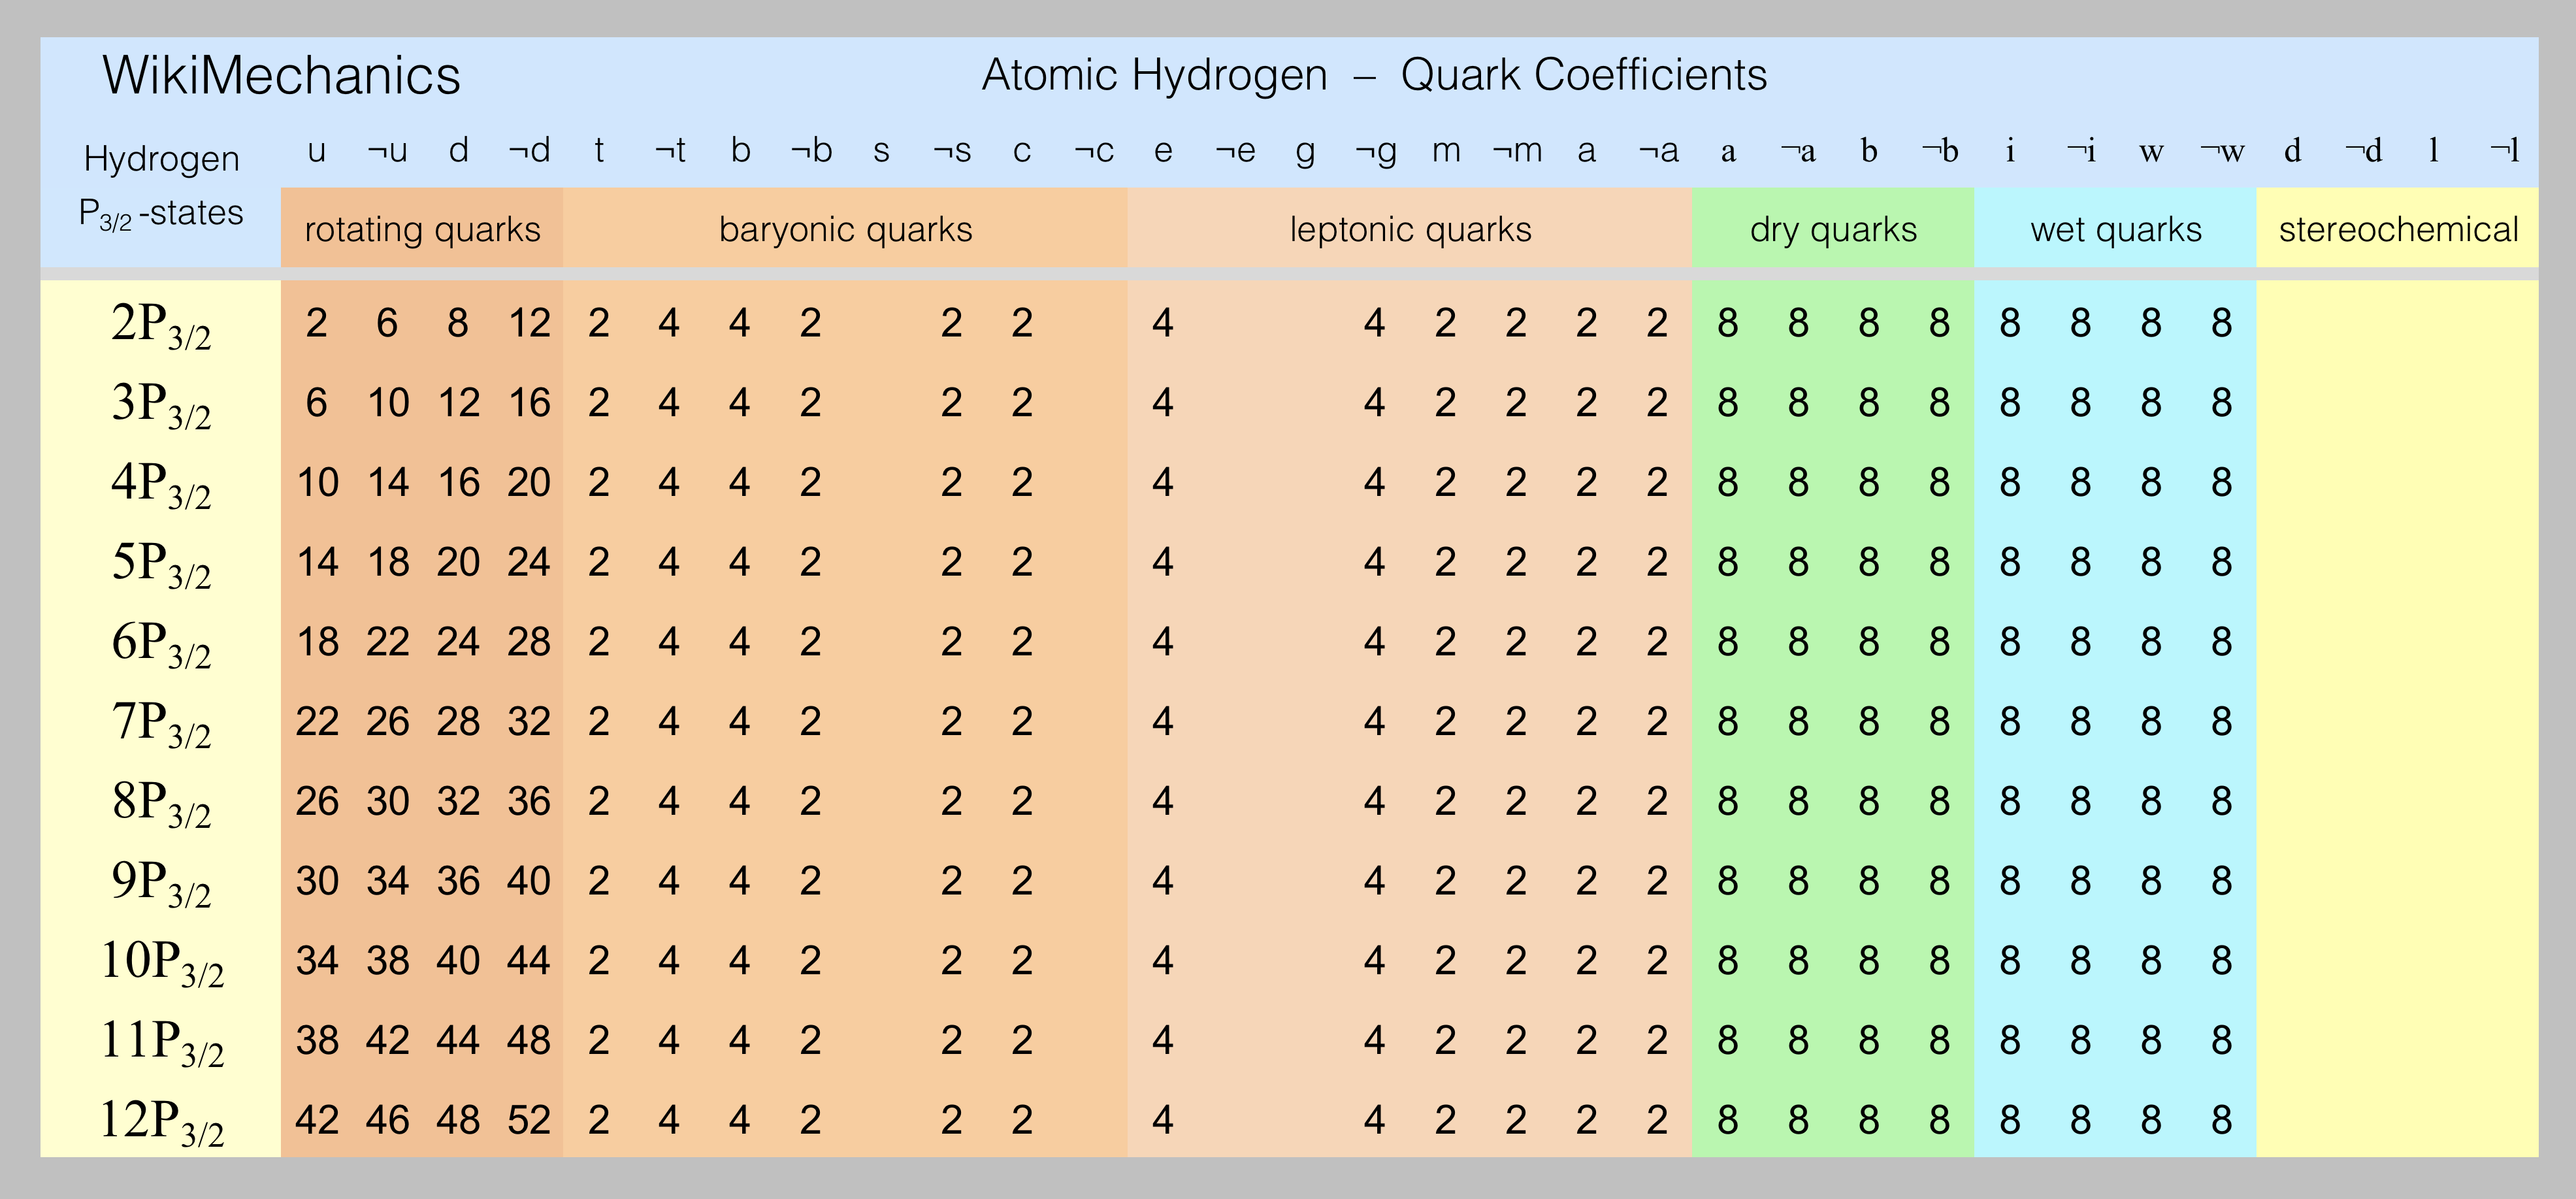 hp3-2quarks.png